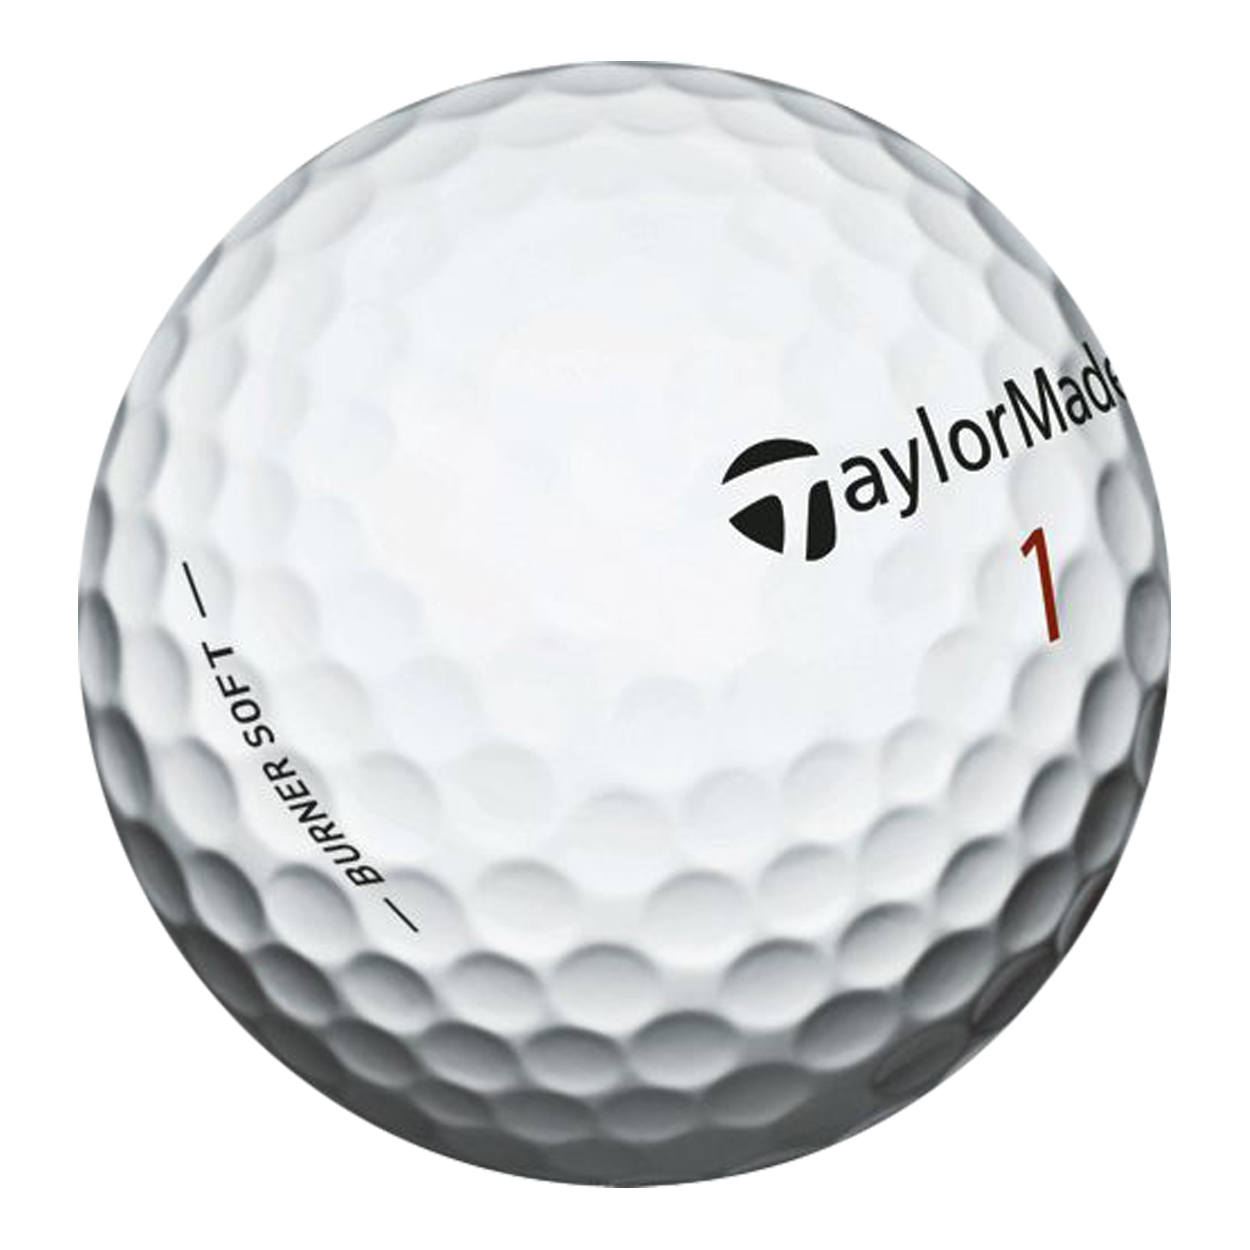 The TaylorMade Burner Soft Golf Balls feature:2 piece Ionomer construction. REACT core provides maximum distance off the tee, yet is incredibly soft. Ionomer cover for responsive short game performance.60 compression design means you don't have to have a pro's swing speed to get the Burner to fly! Sold in manufacturer's packaging.